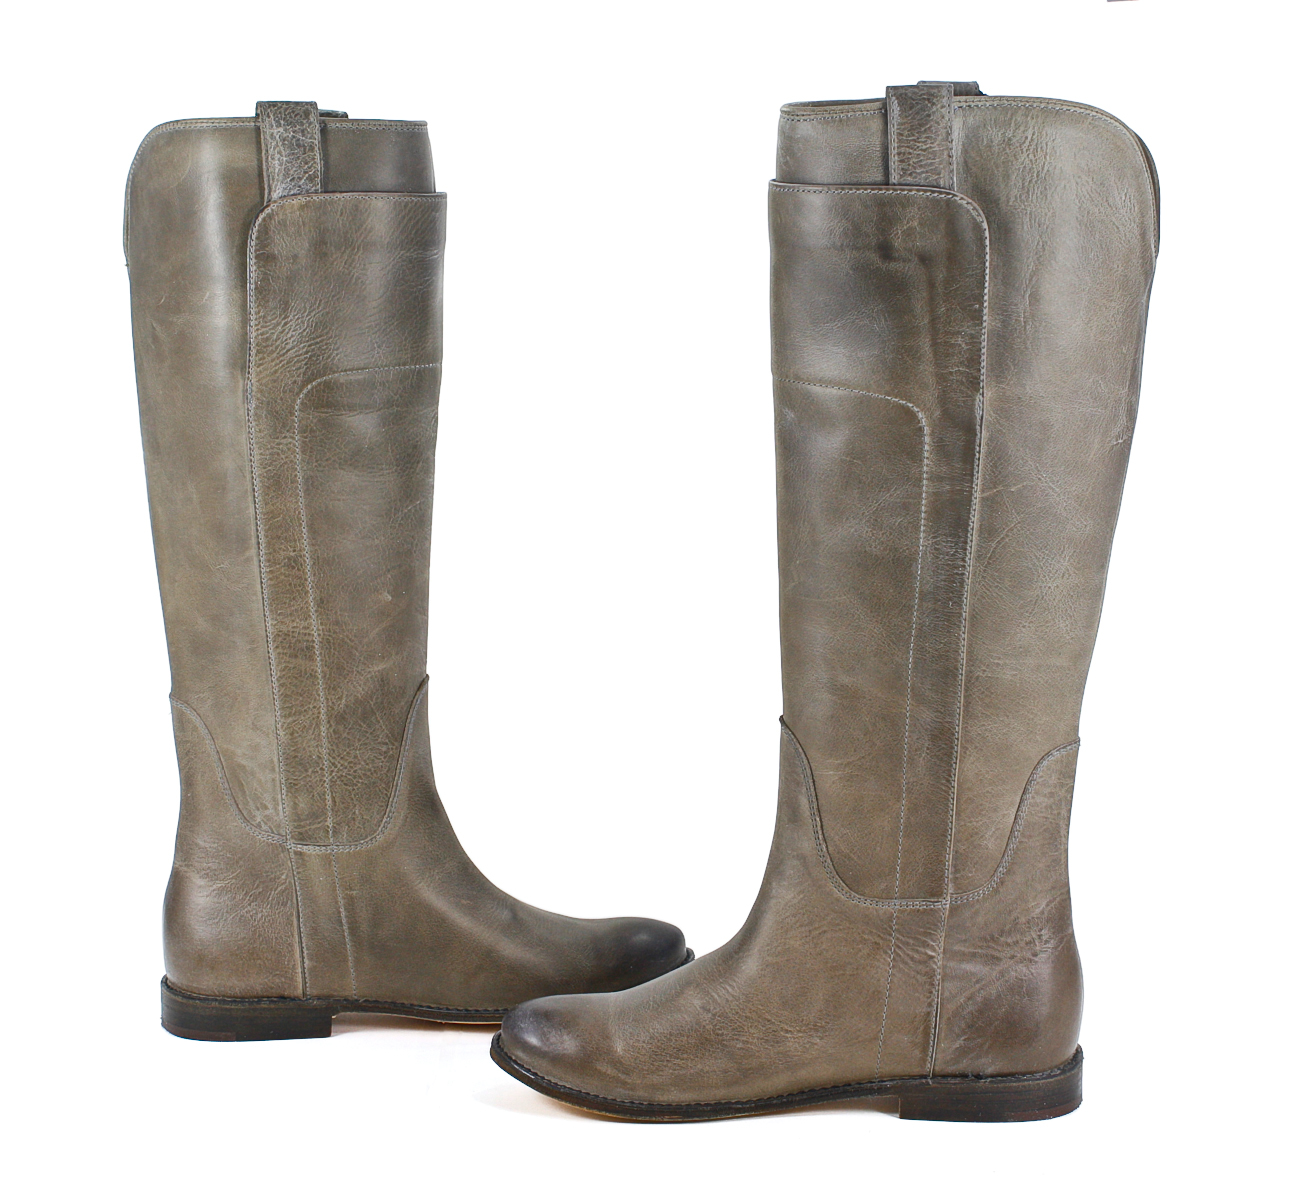 Frye Womens Paige Tall Riding Leather Grey Fashion Boot 7 ...